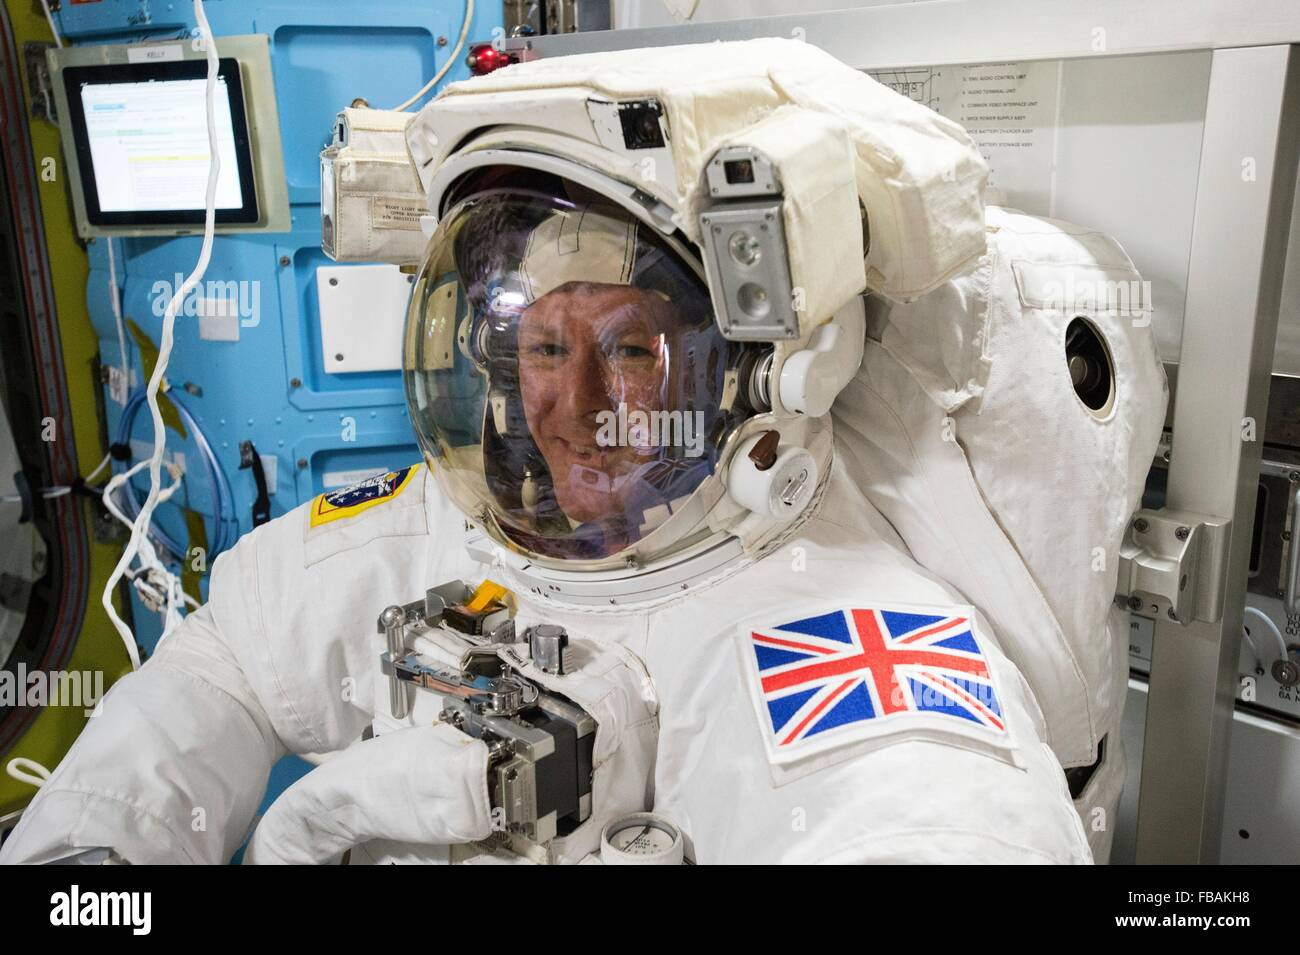 European Space Agency Expedition 46 astronaut Timothy Peake conducts a final fit check inside his spacesuit January - Stock Image